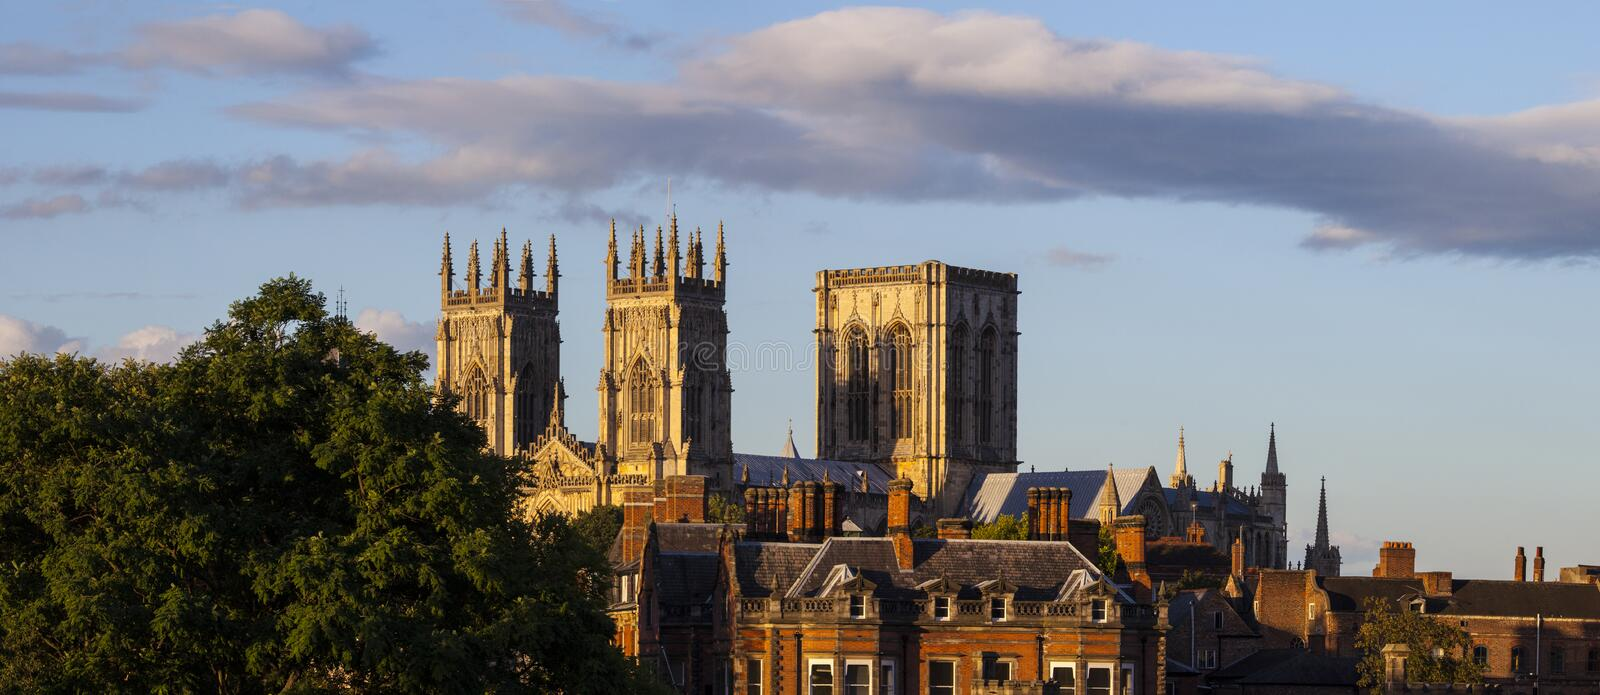 View of York Minster stock photography